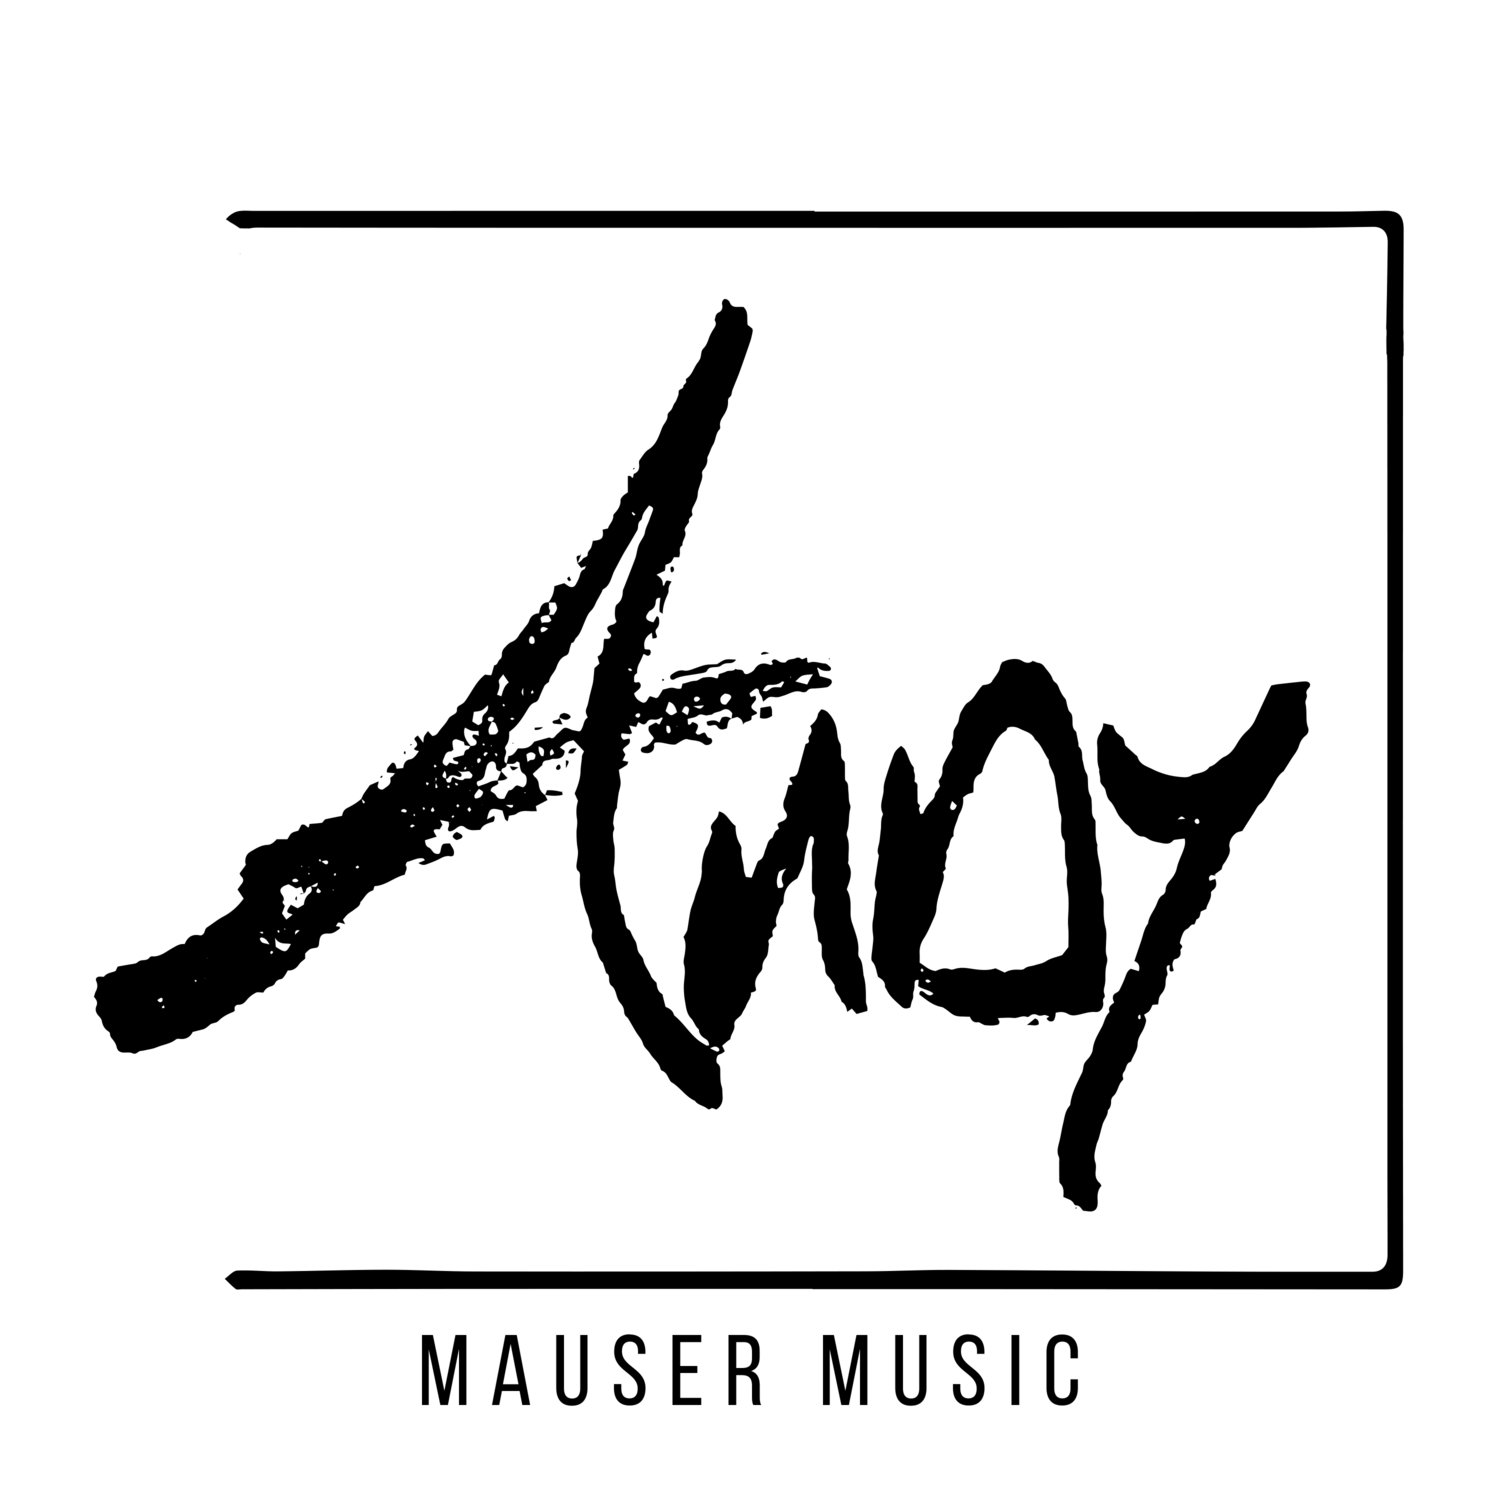 Andy Mauser Music